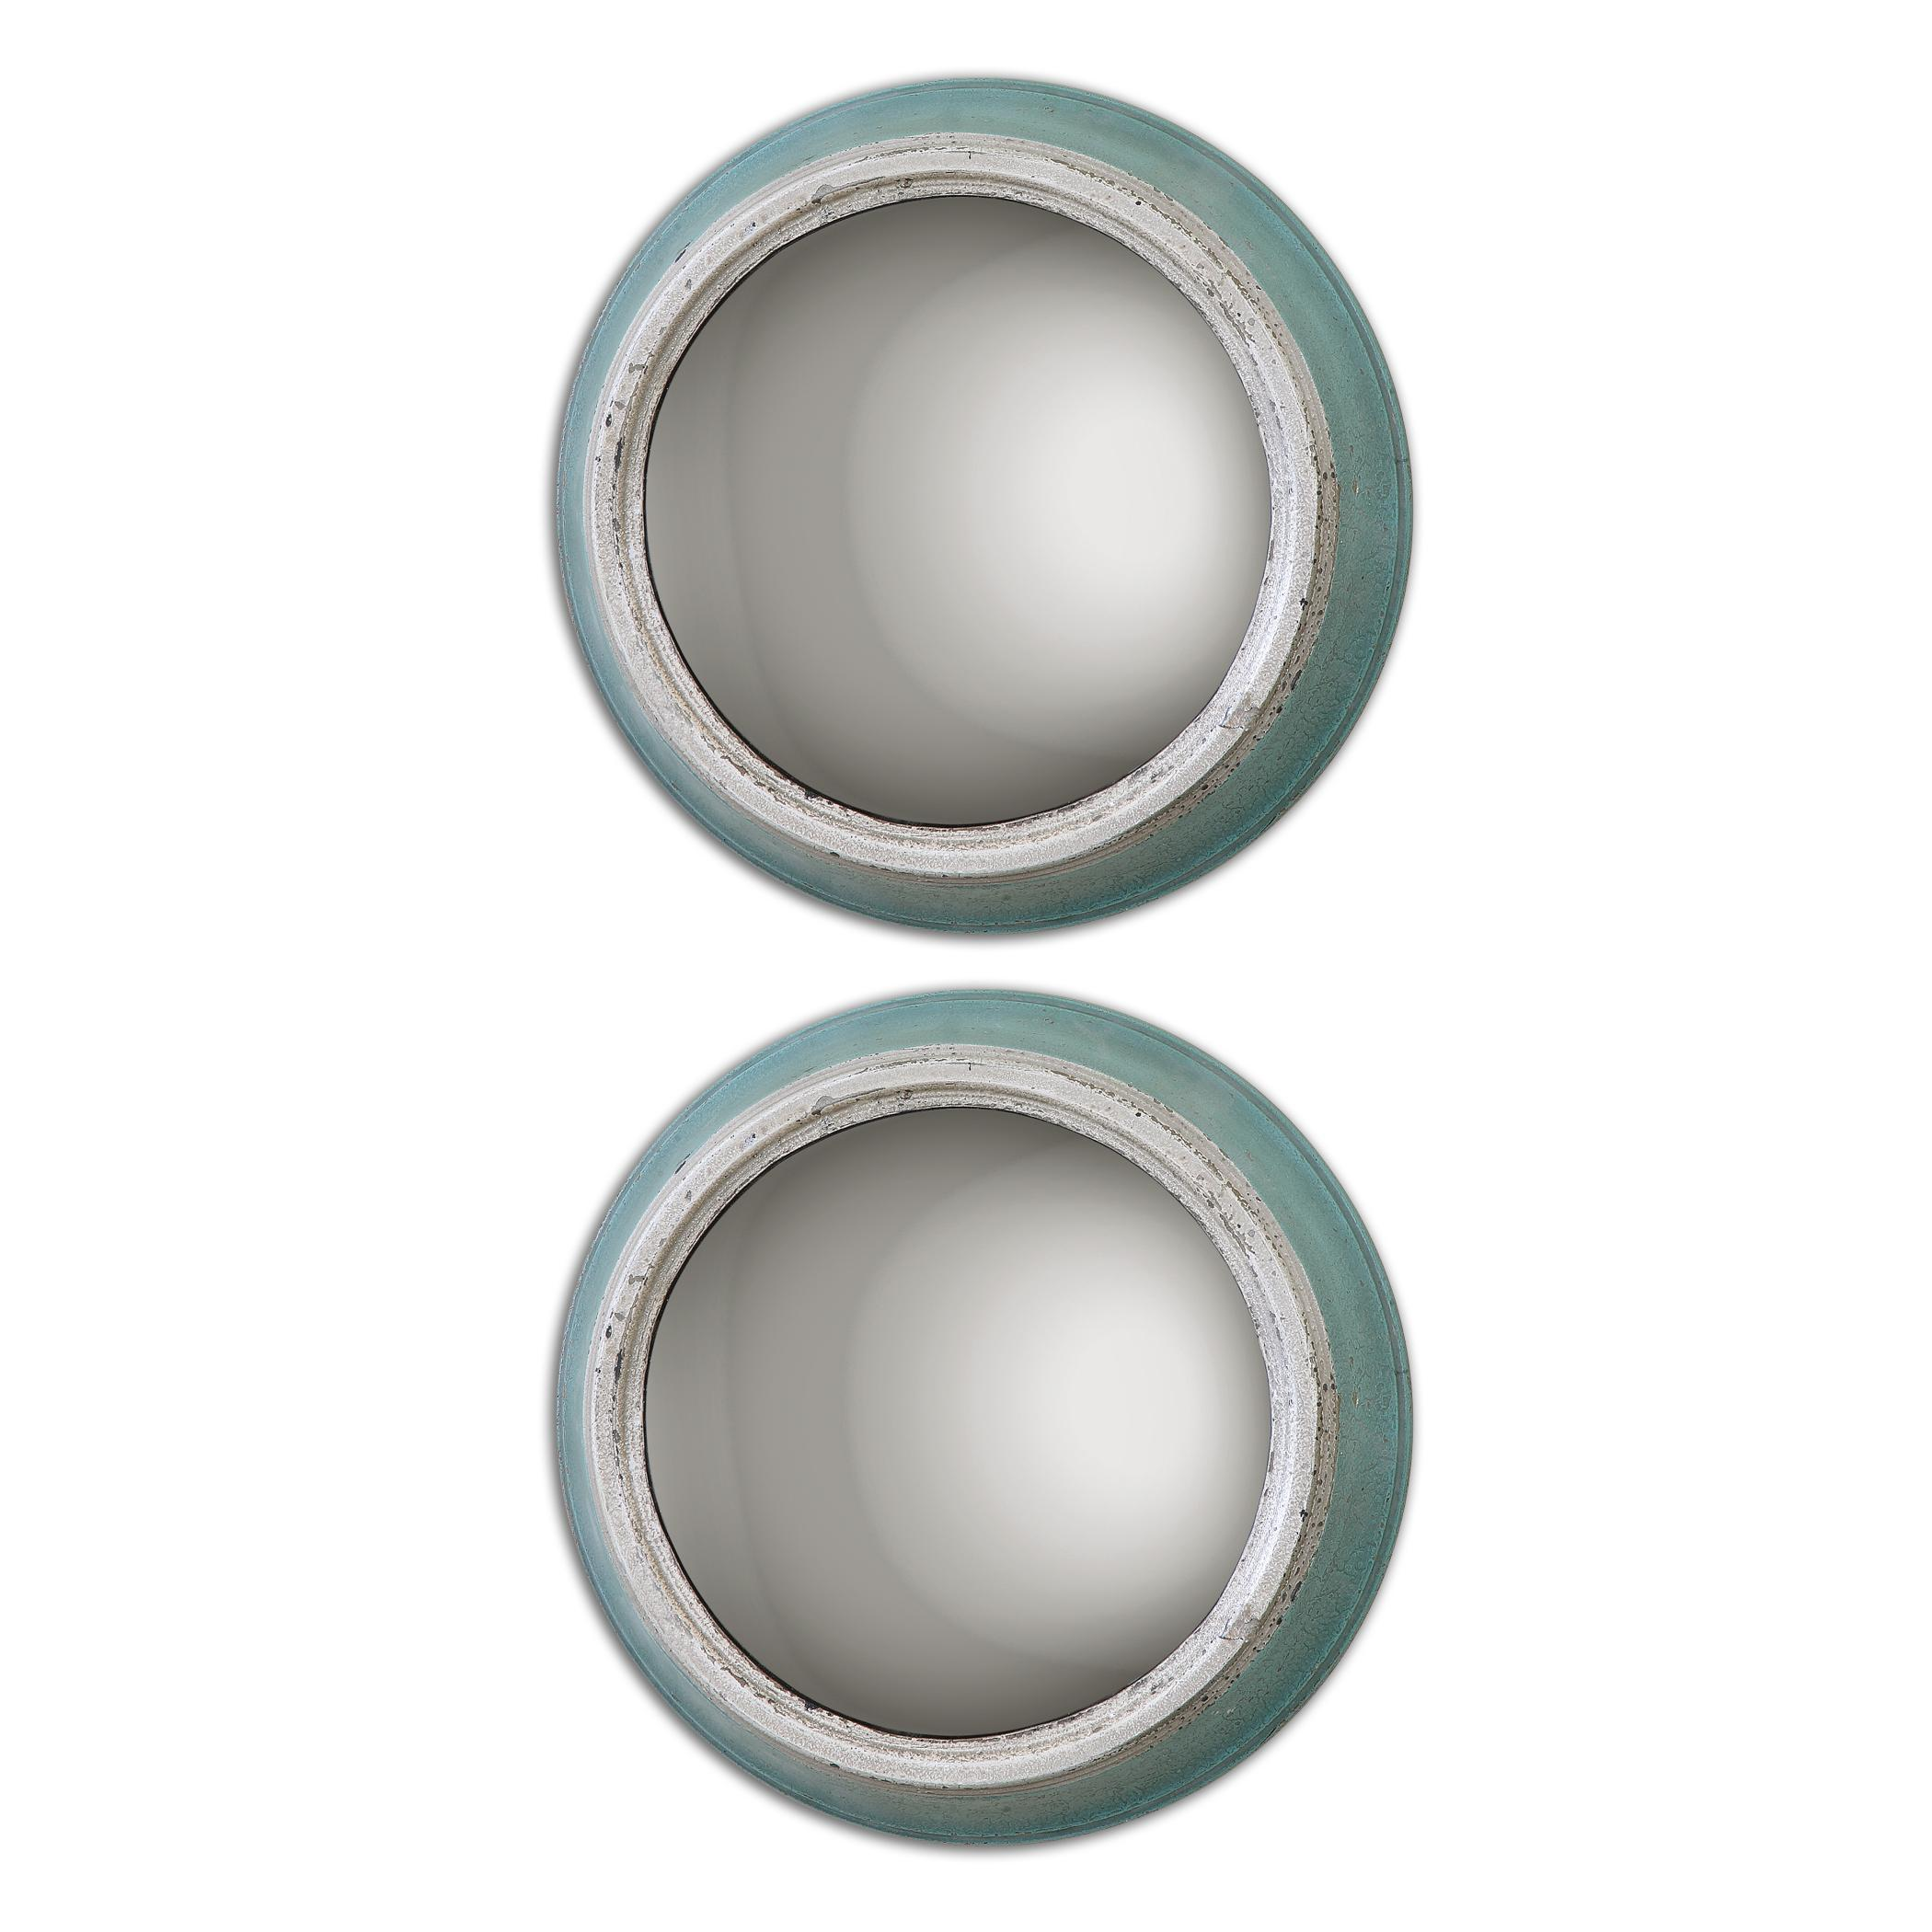 Uttermost Mirrors Fanchon Round Mirrors Set of 2 - Item Number: 13866